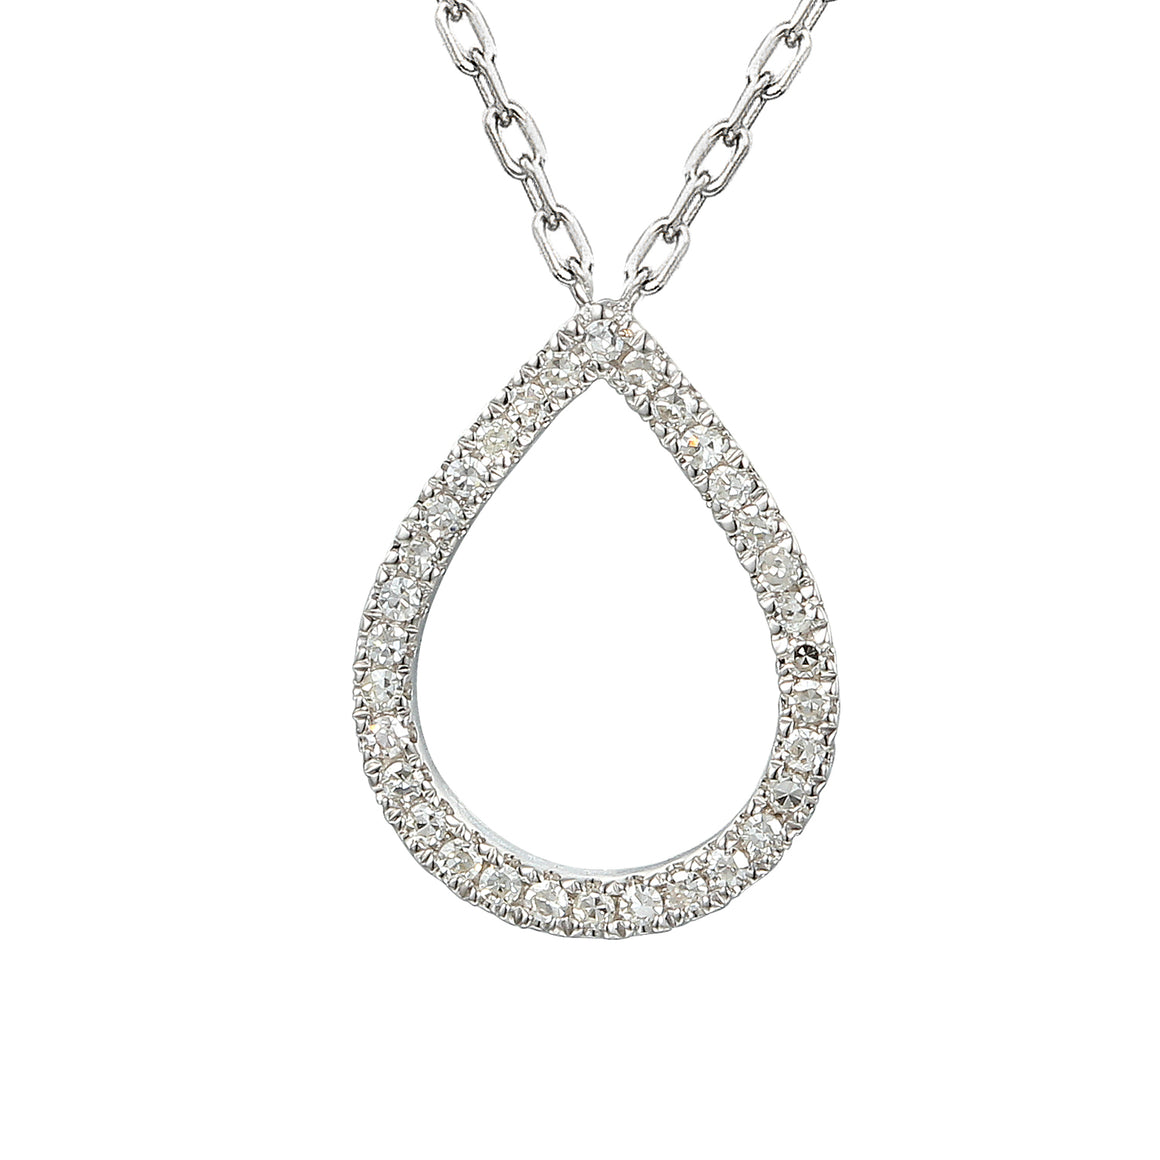 18ct White Gold Diamond Set Pear Shape Geometric Necklace